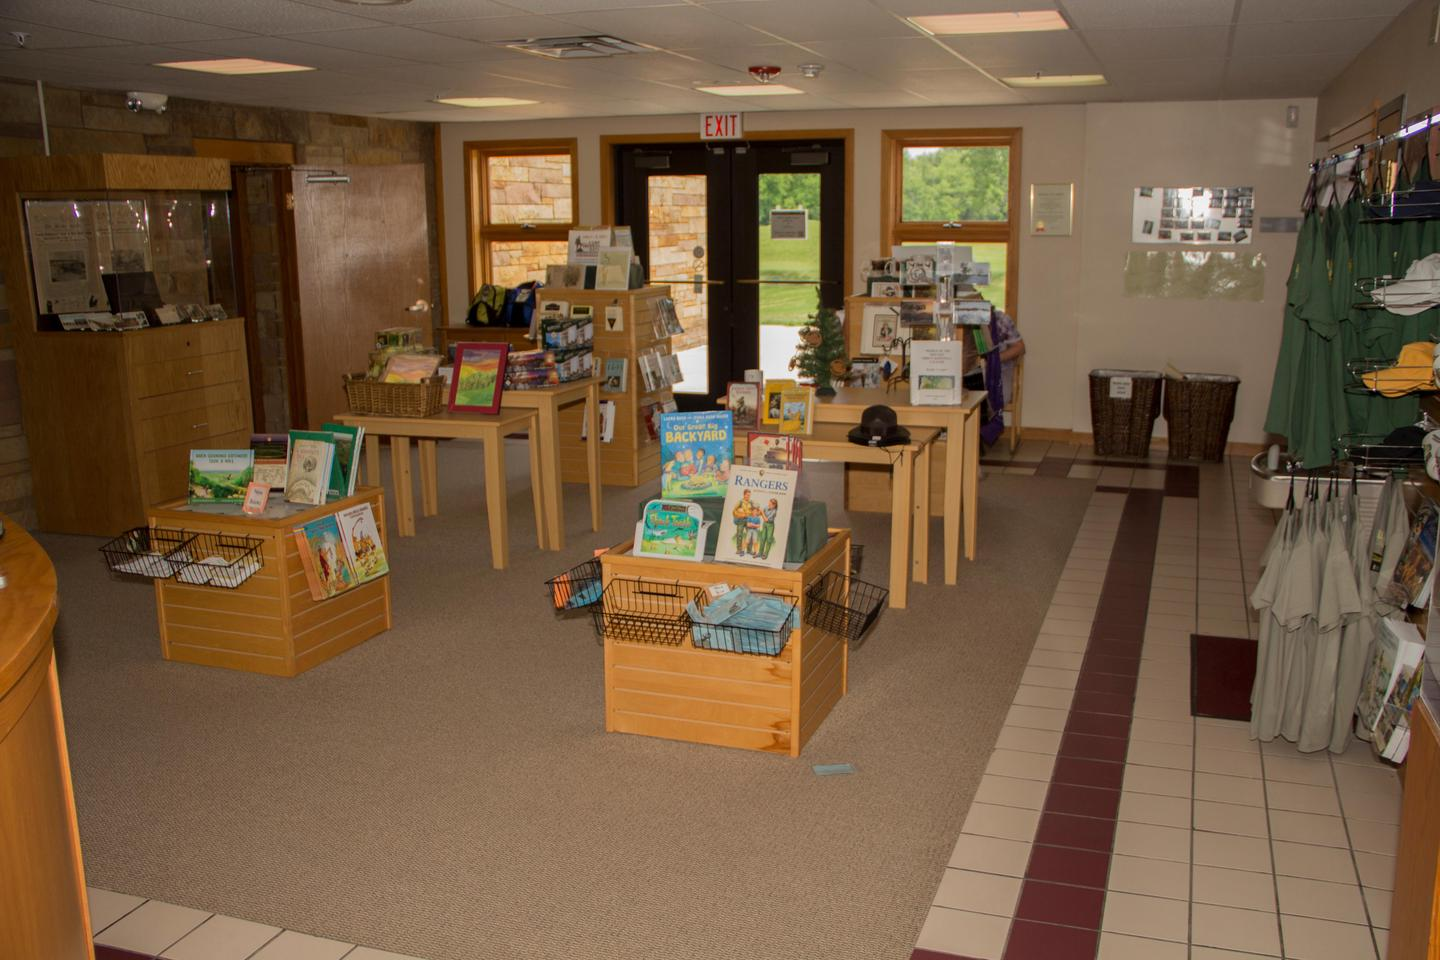 Bookstore AreaThe visitor center bookstore offers guests an opportunity to purchase souvenirs and books